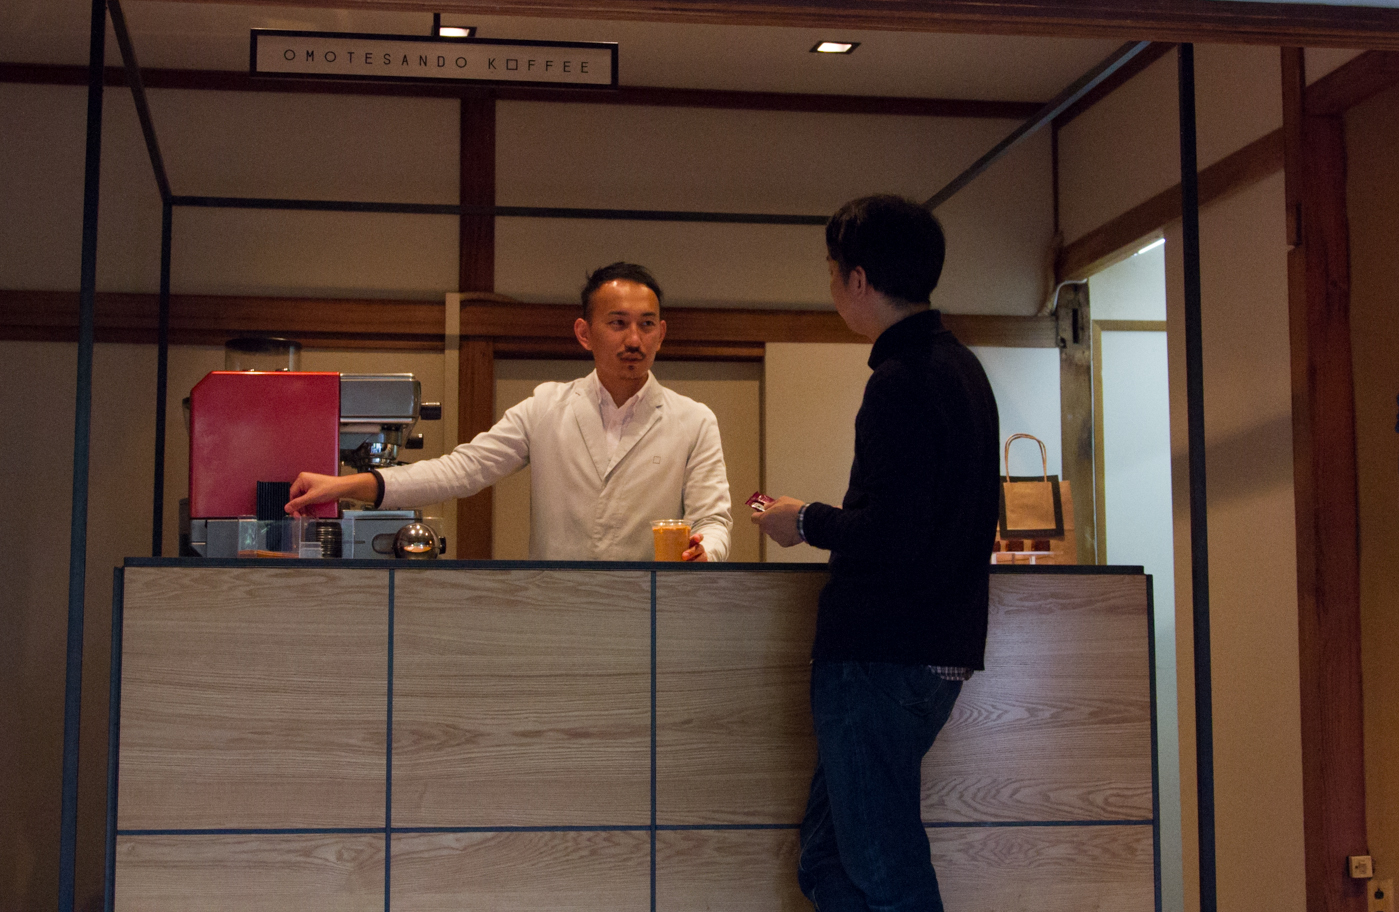 omotesando koffee counter where japanese barista is talking to customer